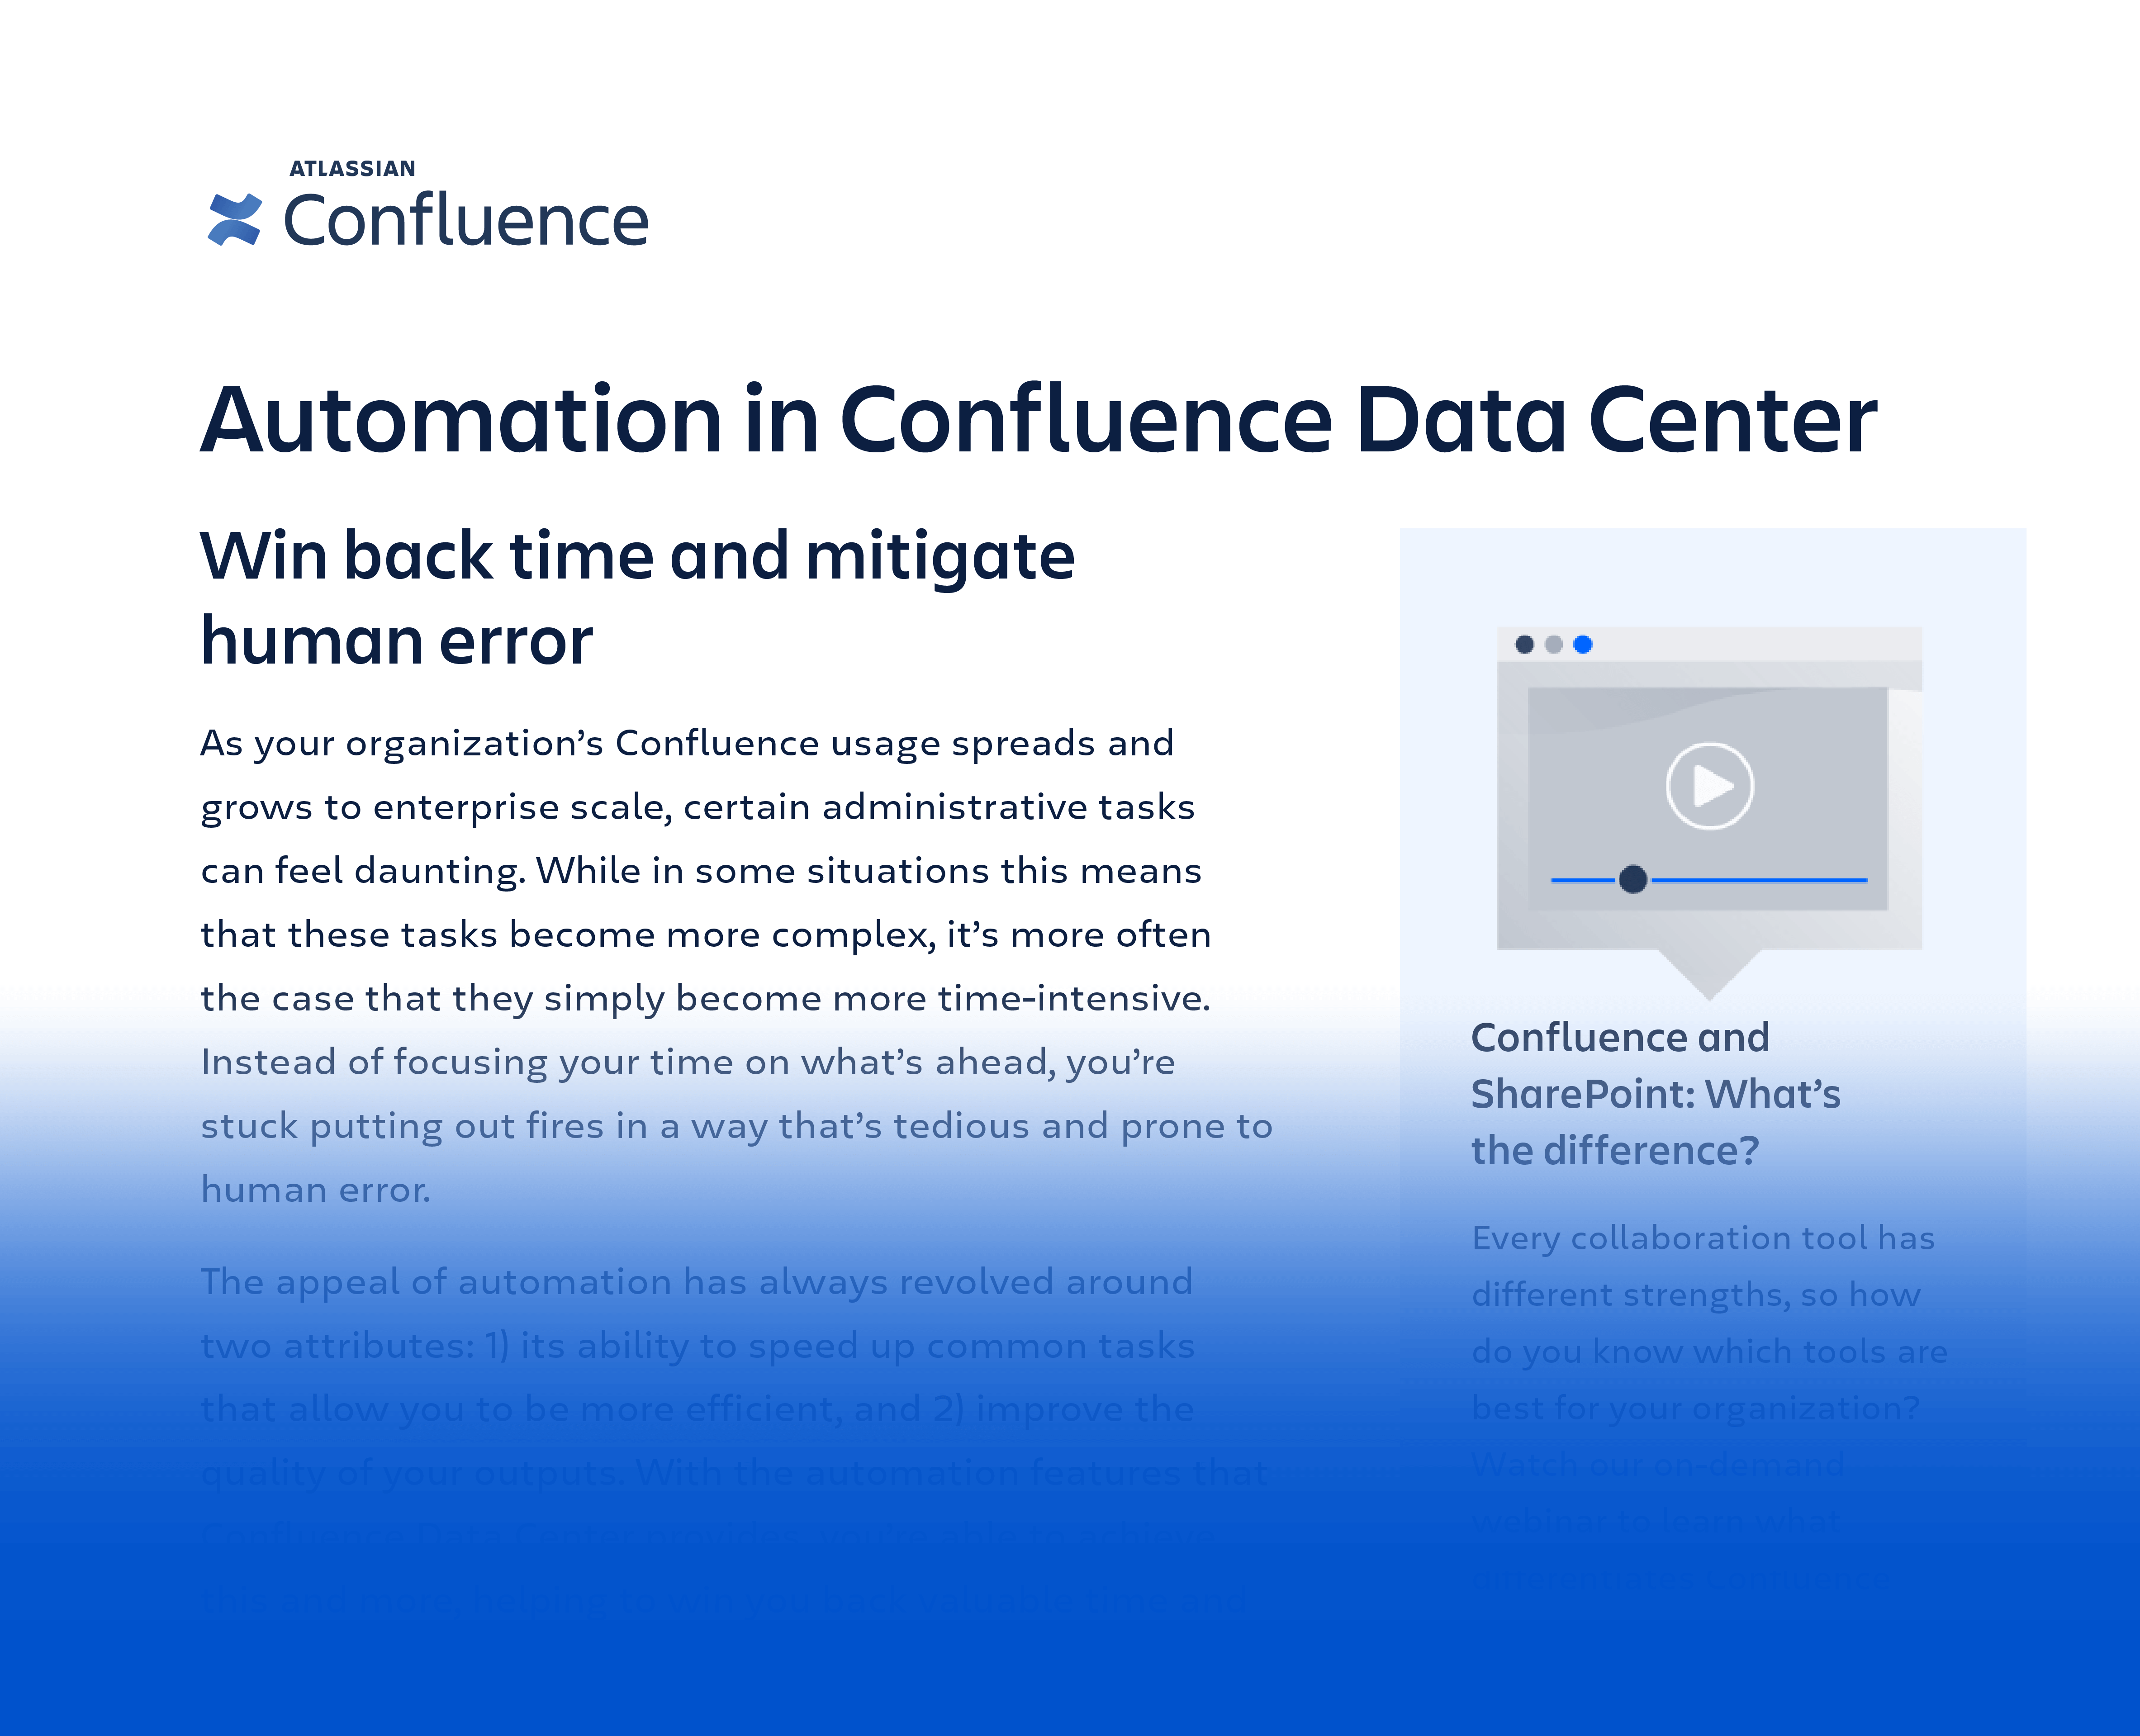 Datasheet: Automation in Confluence Data Center